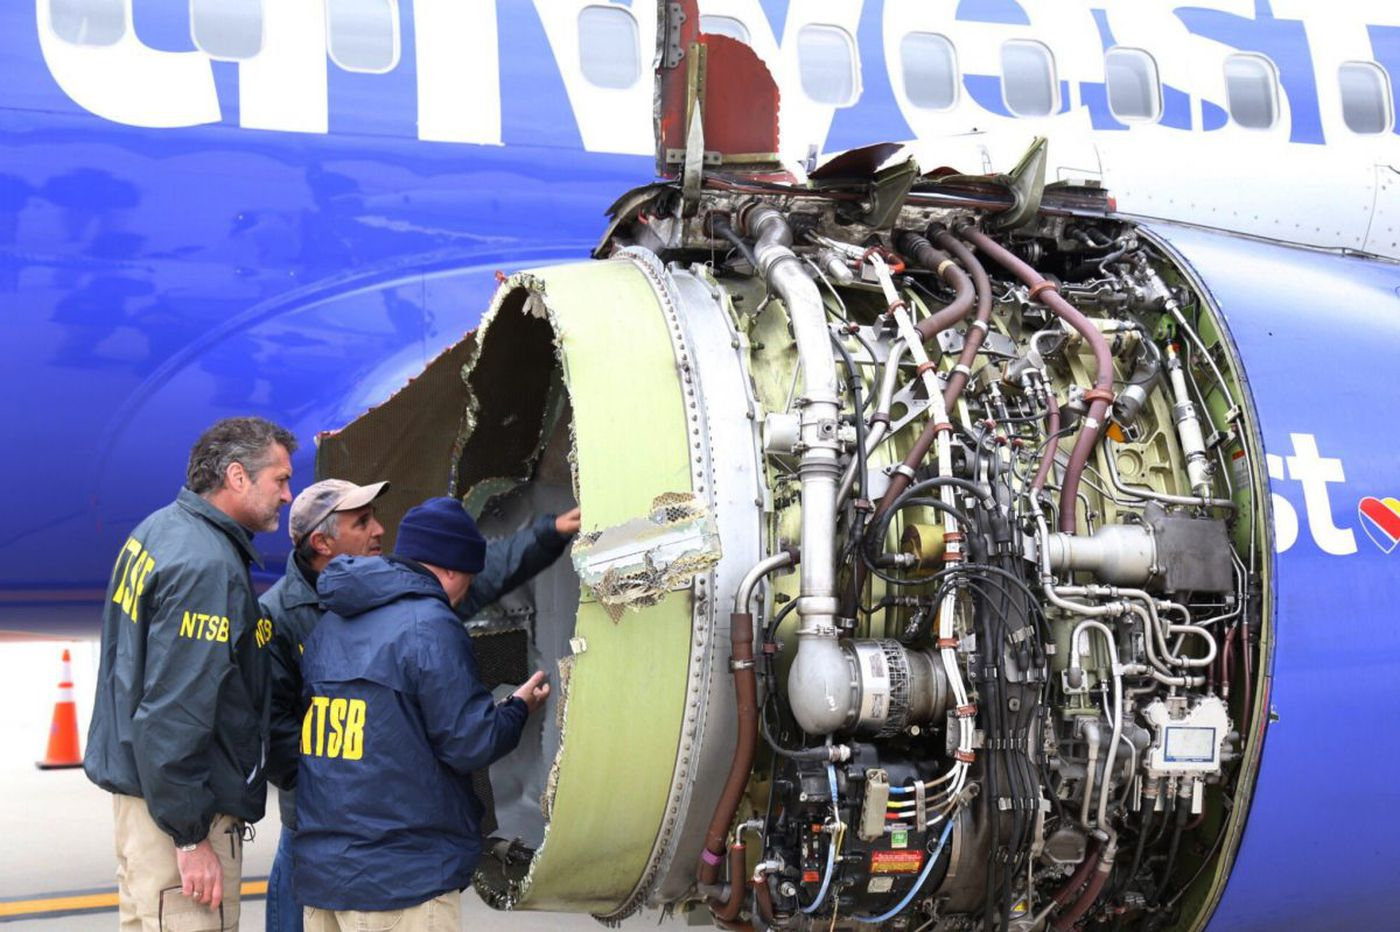 Southwest flight 1380: Wednesday updates from the engine explosion that  killed one